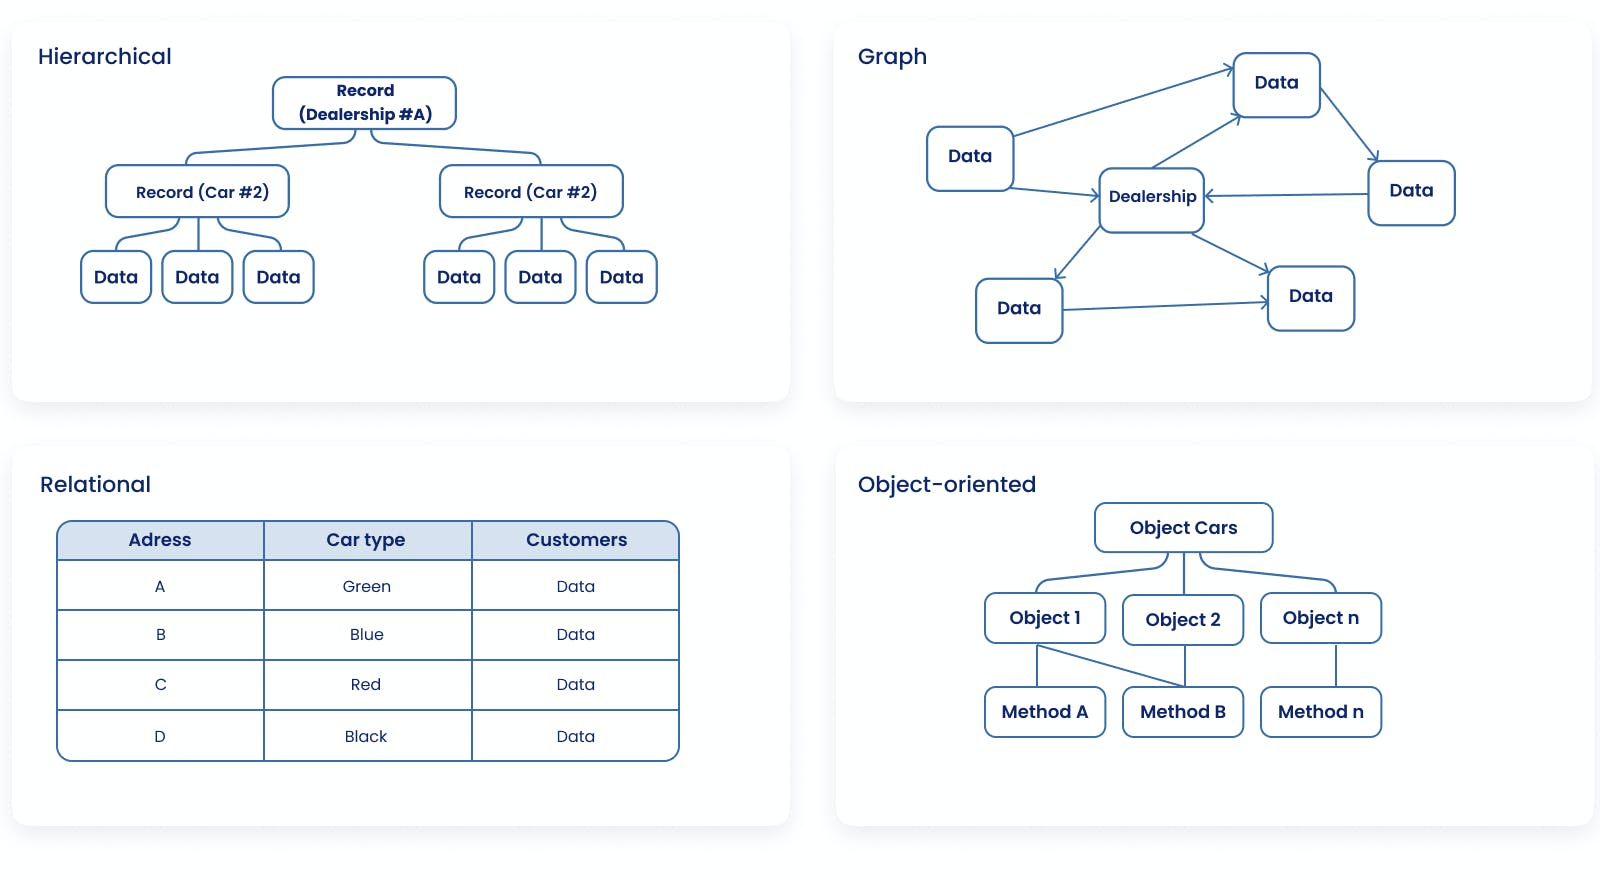 Database development : Types of databases - Hierarchical, Graph, Relational, Object-oriented